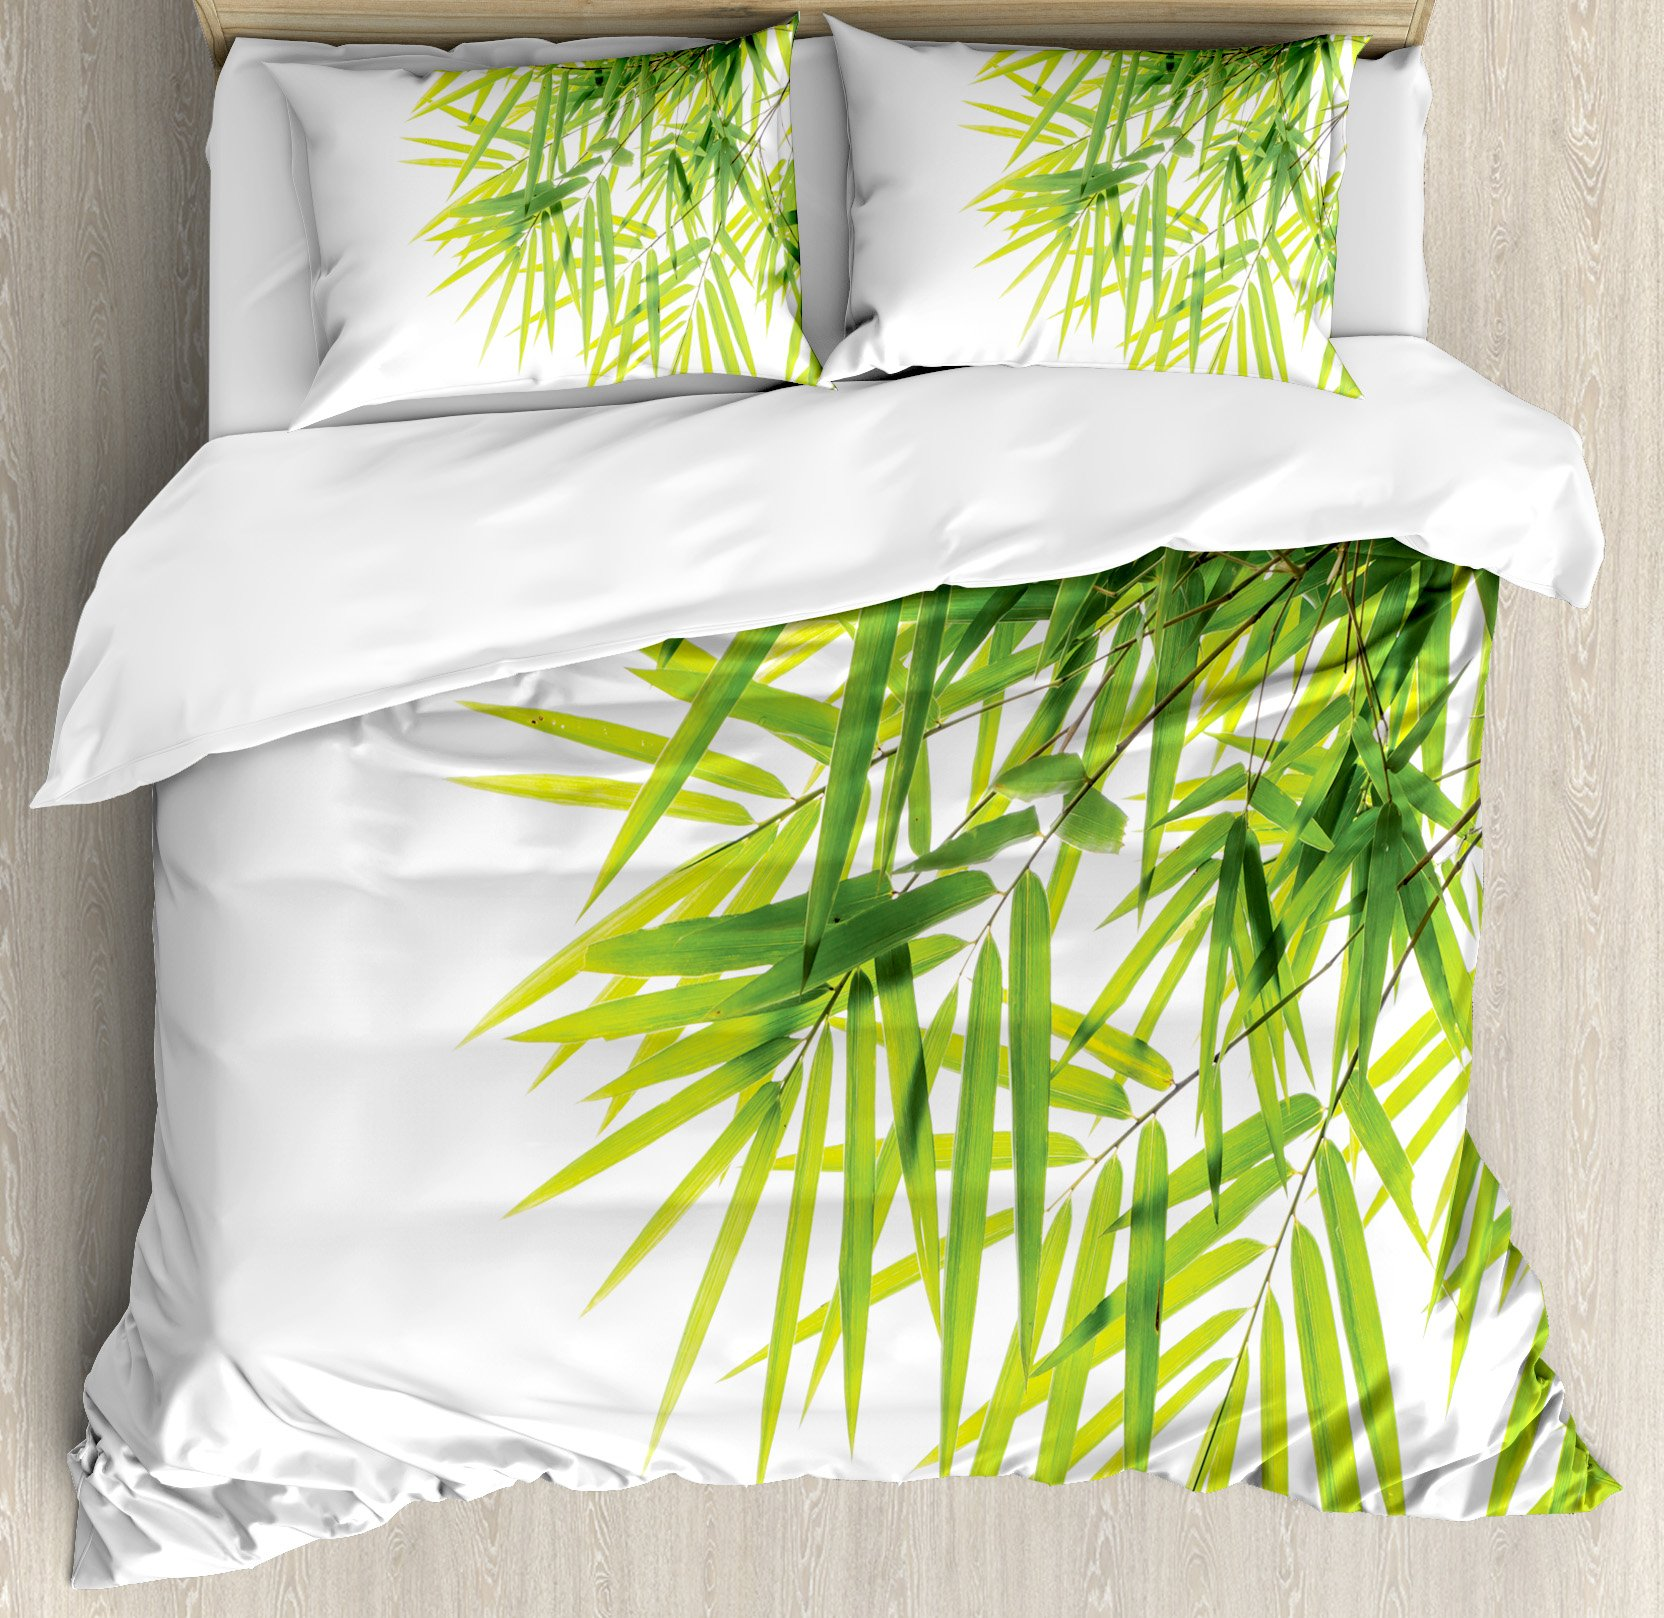 Bamboo House Decor Duvet Cover Set by Ambesonne, Bamboo Leaf Illustration Icon for Wellbeing Health Fresh Purity Tranquil Art Print, 3 Piece Bedding Set with Pillow Shams, King Size, Green White by Ambesonne (Image #1)